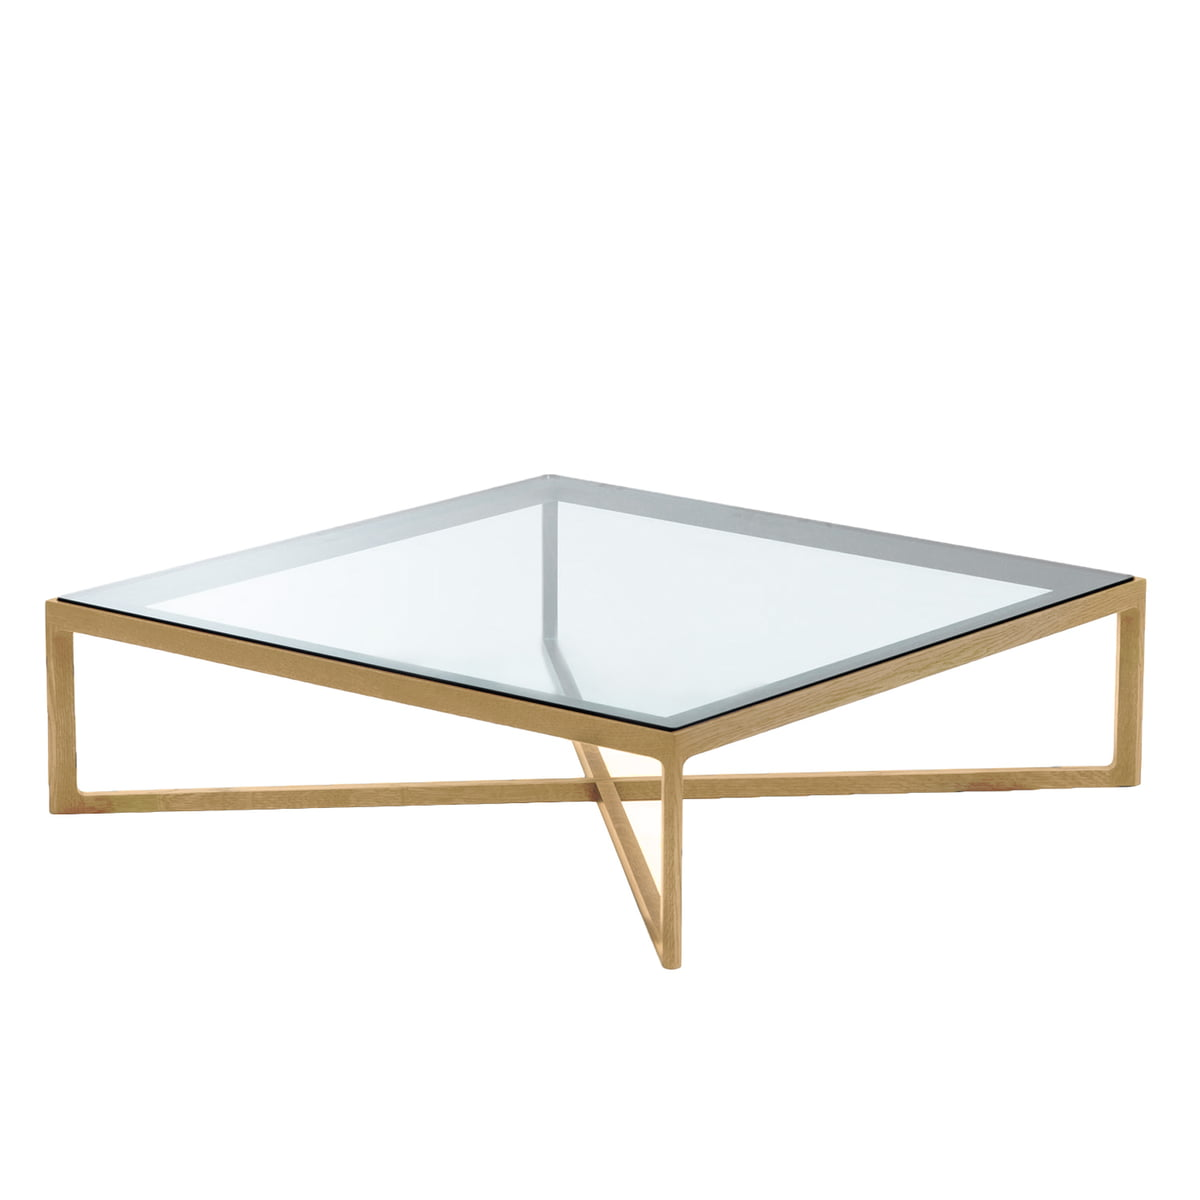 Marc krusin coffee table by knoll in the shop knoll coffee table oak glass surface geotapseo Choice Image